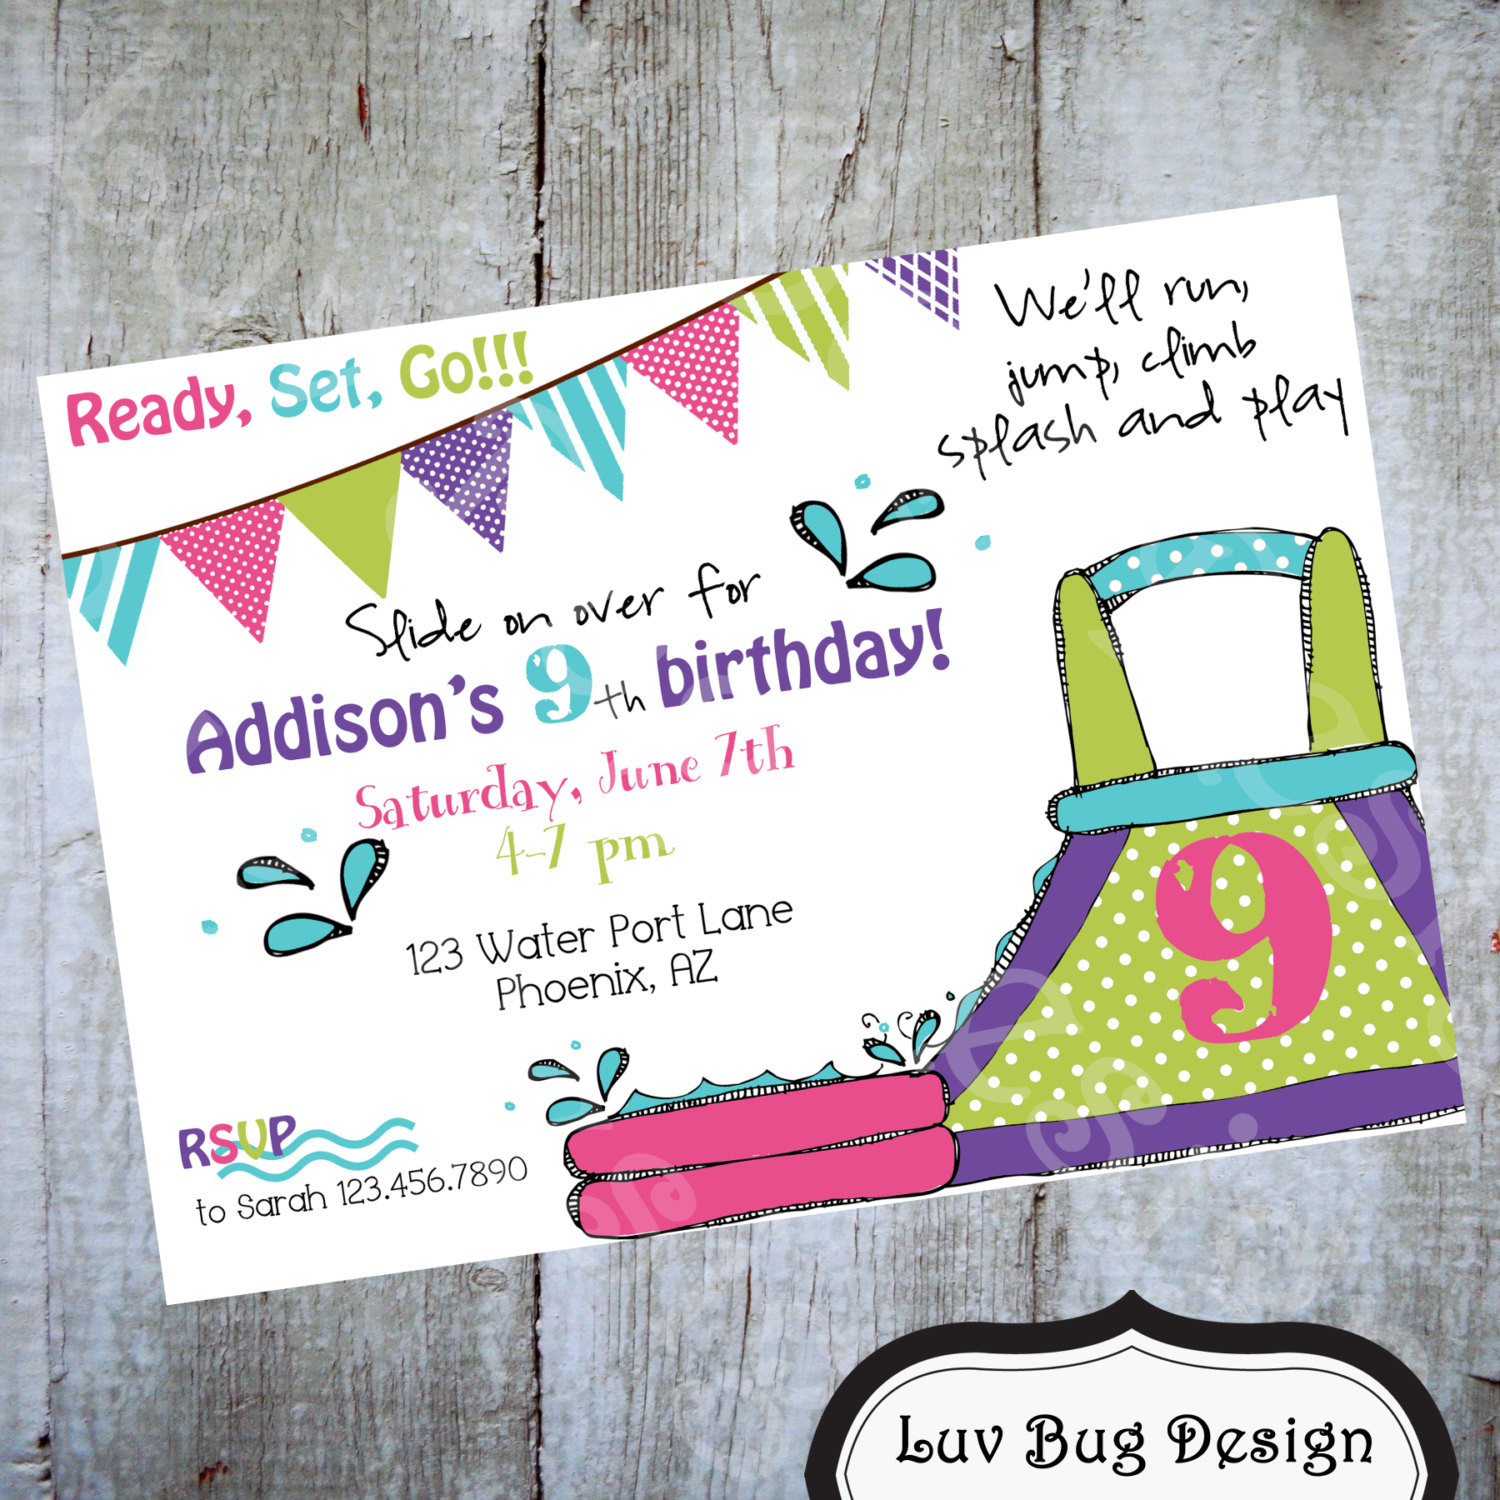 Best ideas about Water Slide Birthday Invitations . Save or Pin WATER SLIDE Birthday Invitation Printable party by Now.